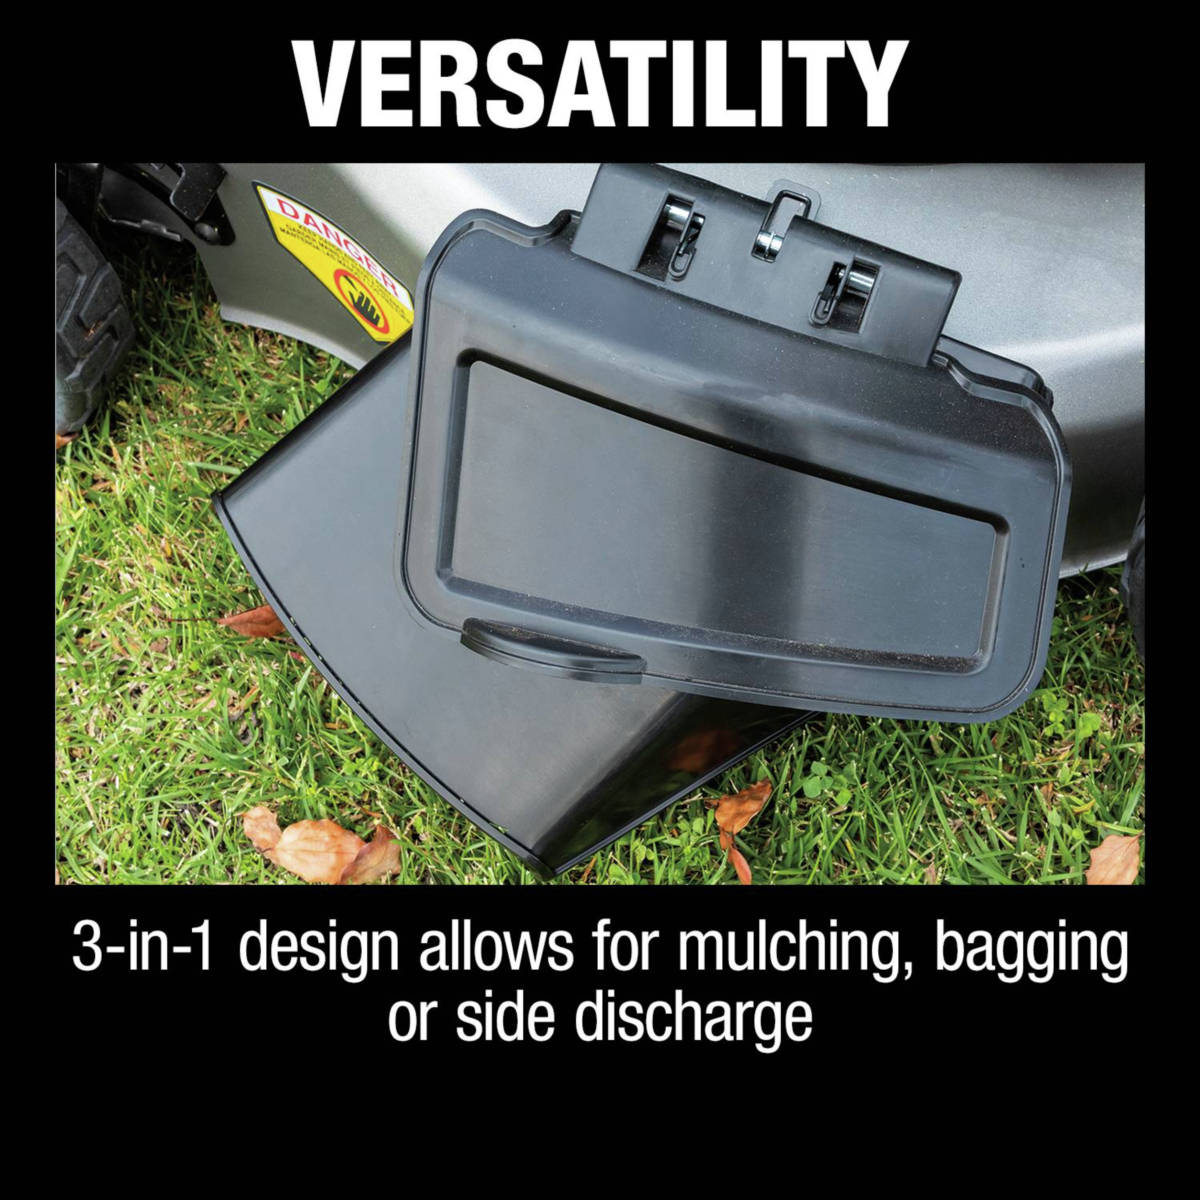 18V X2 (36V) LXT Lawn Mower 3-in-1 design allows for mulching, bagging or side discharge